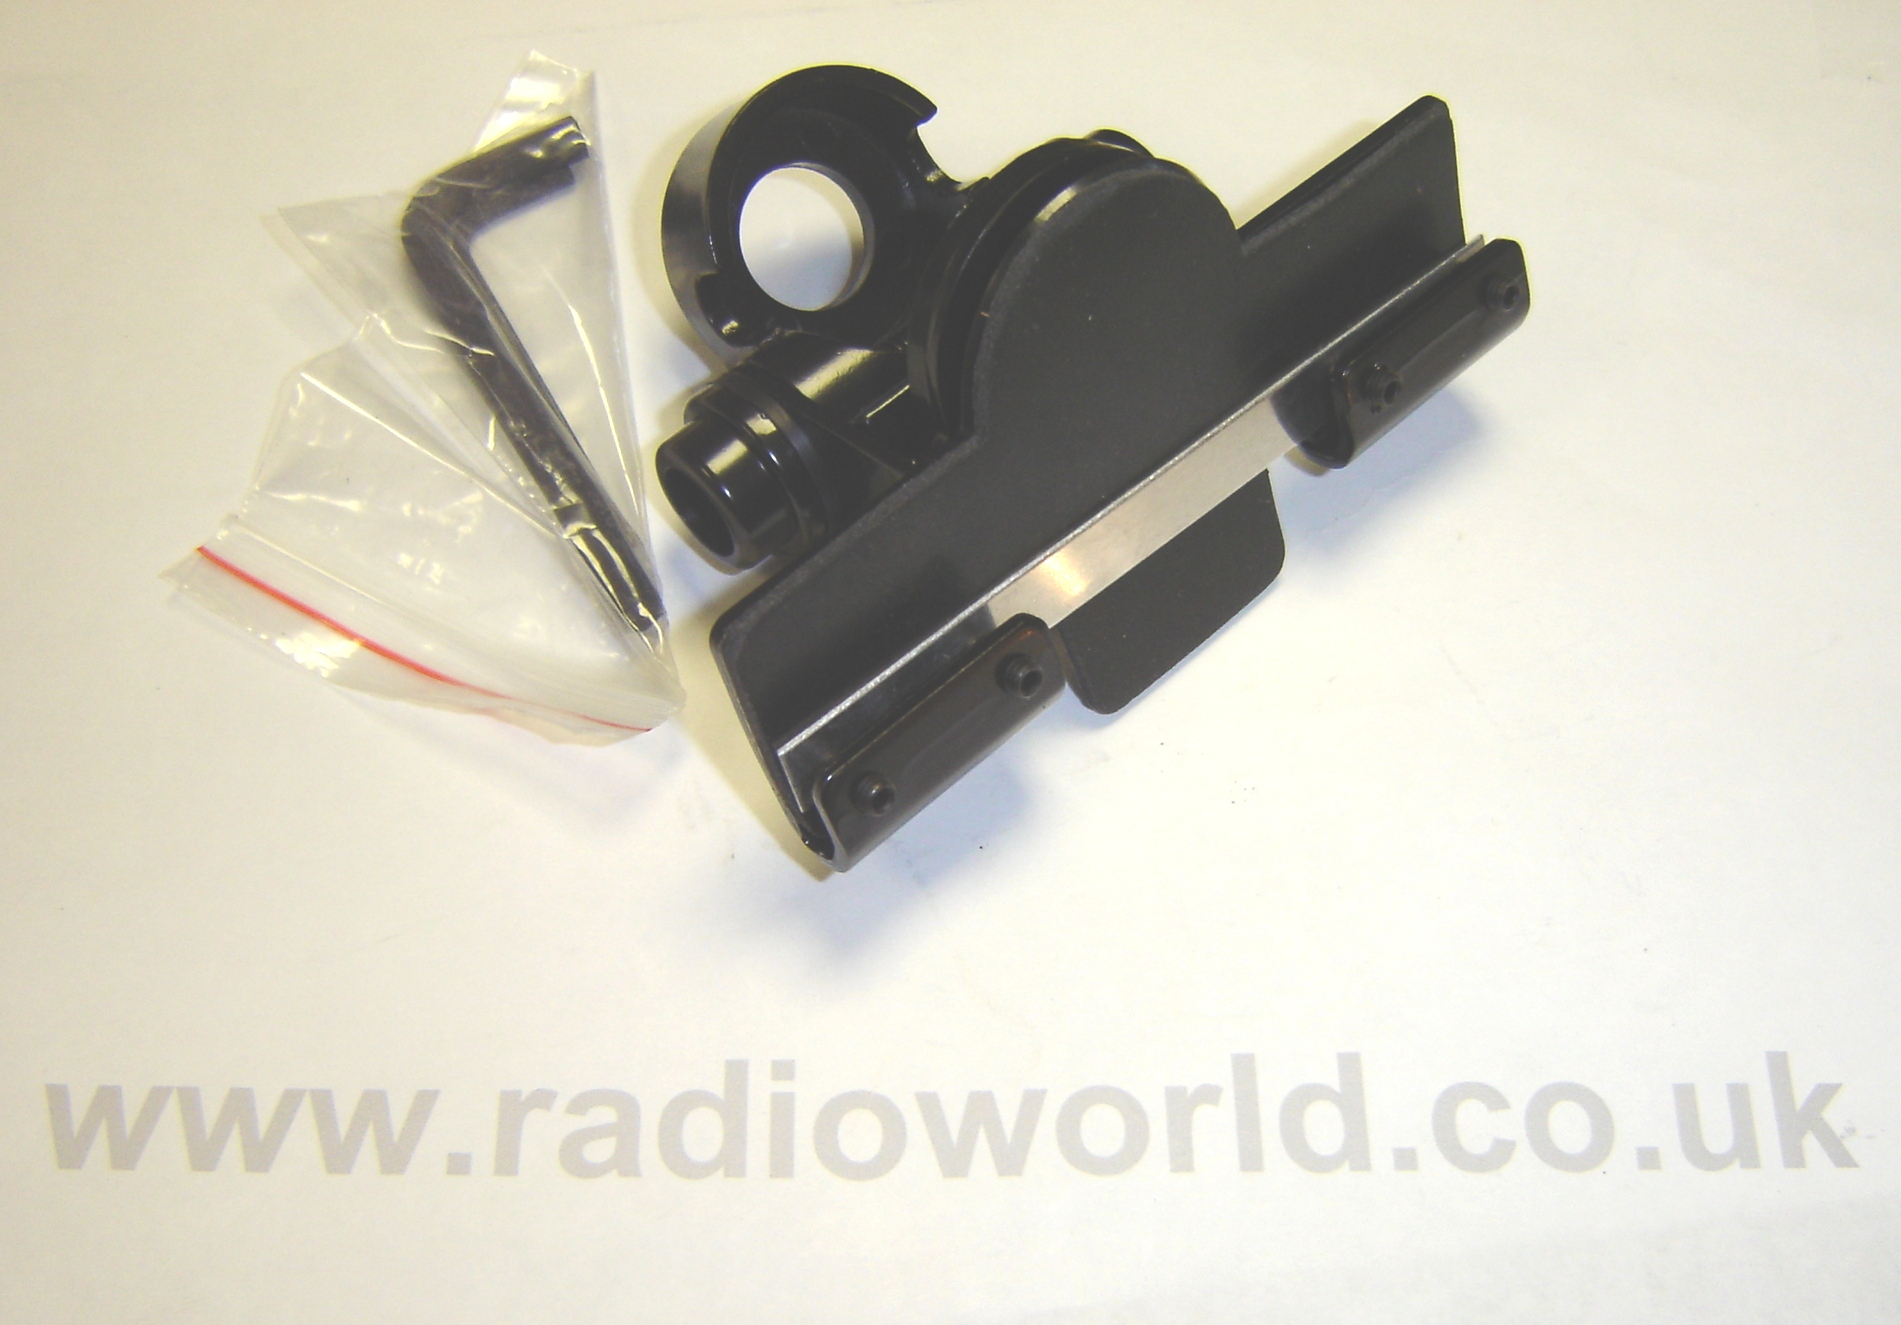 MB-400 HATCHBACK / TRUNK MOUNT ANTENNA BRACKET